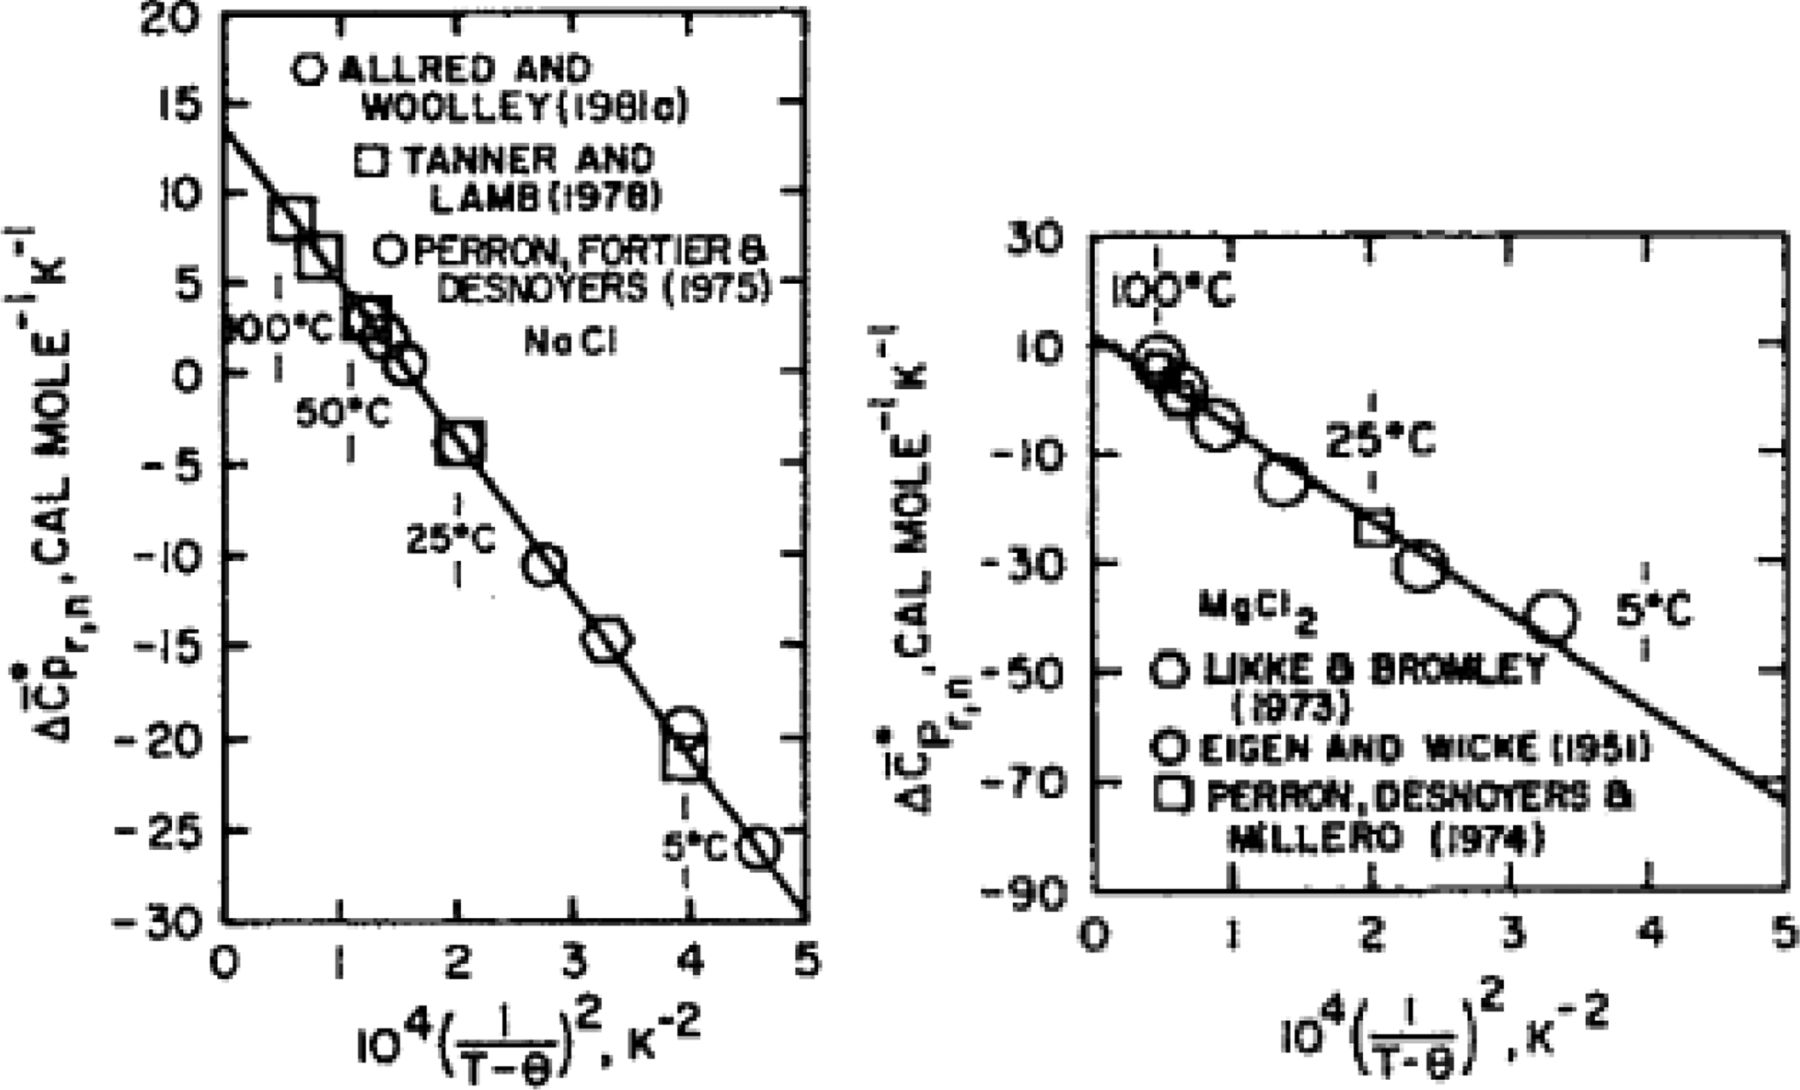 Thermodynamic modelling of fluids from surficial to mantle